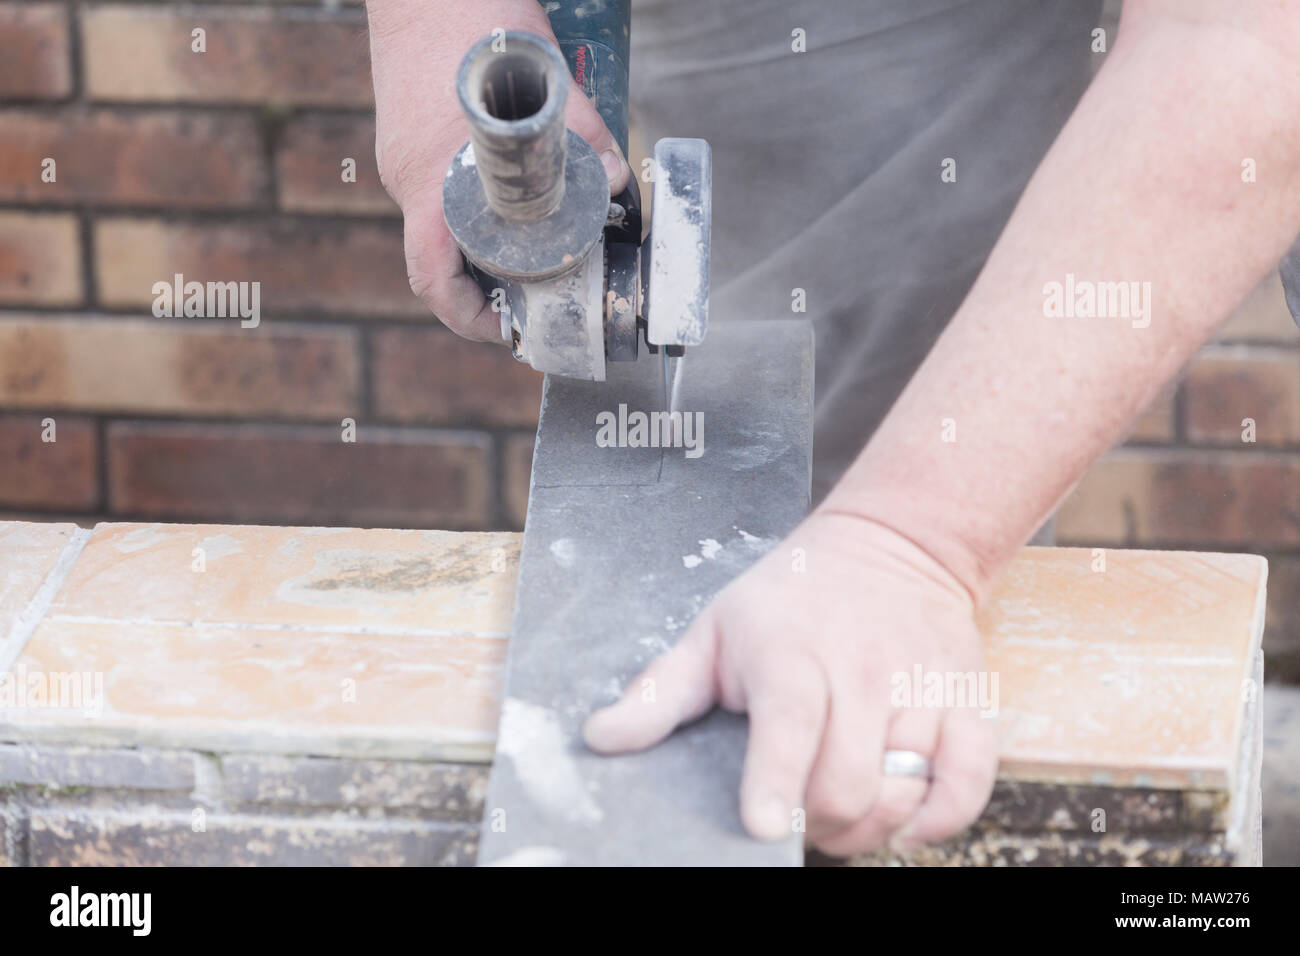 Electric tile cutter stock photos electric tile cutter stock tiler cutting a tile with a grinder stock image dailygadgetfo Images